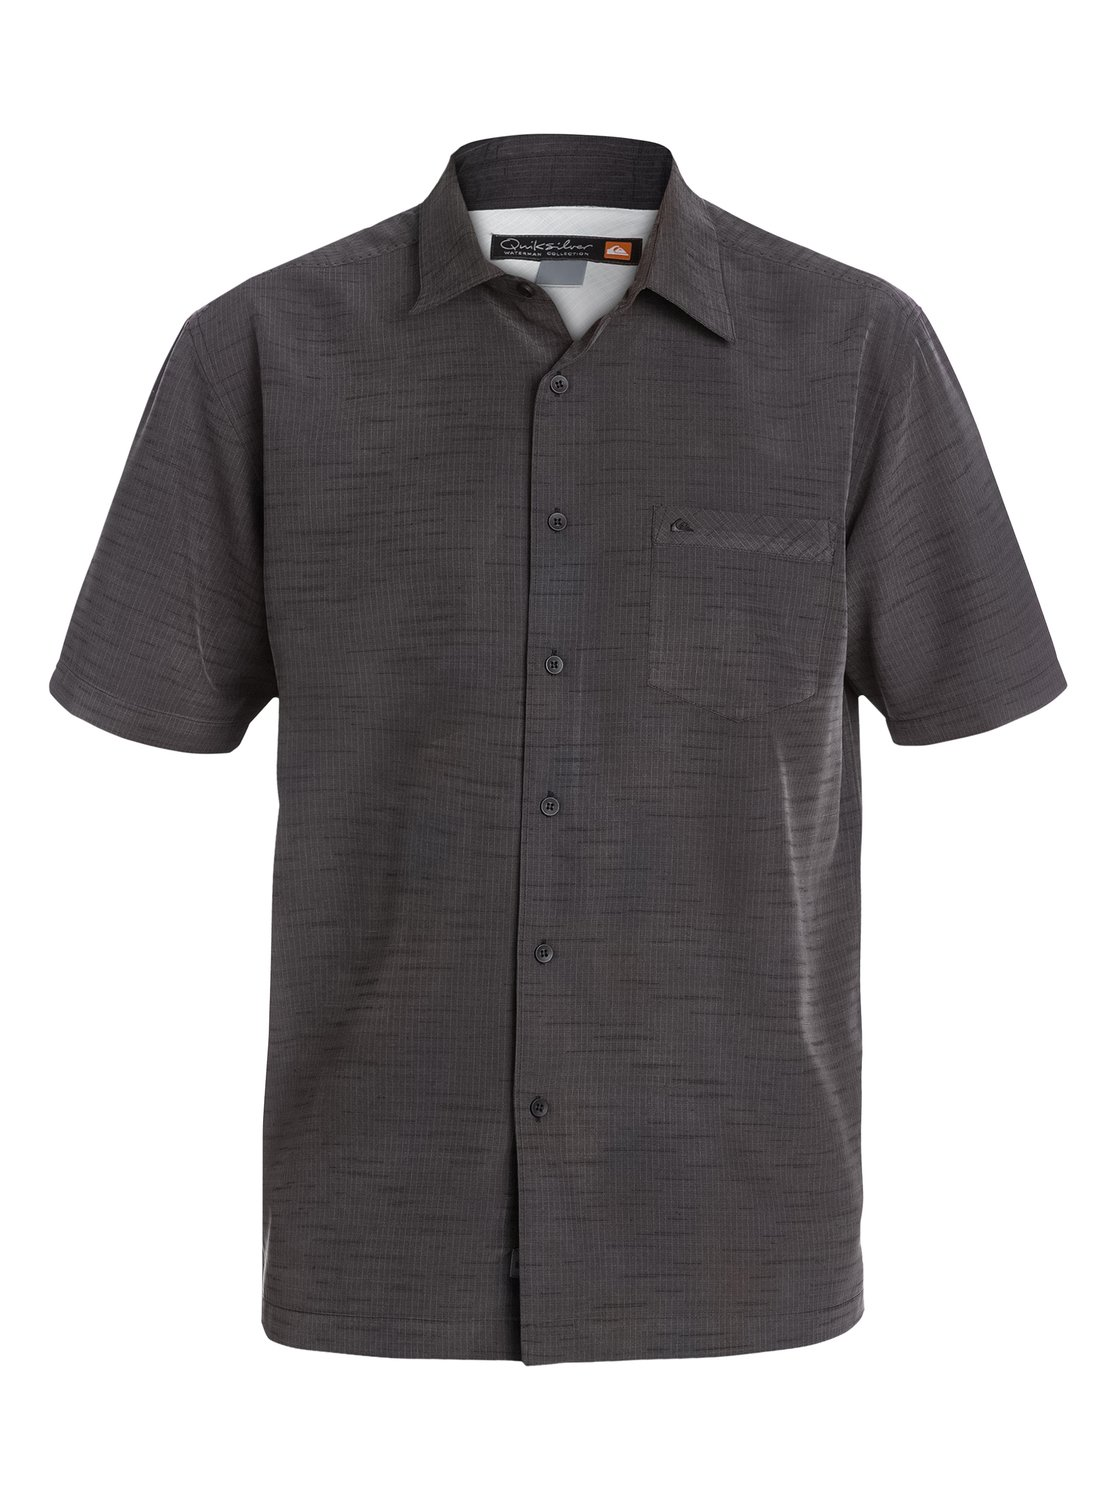 Quiksilver waterman centinela short sleeve shirt for Mens black short sleeve dress shirt